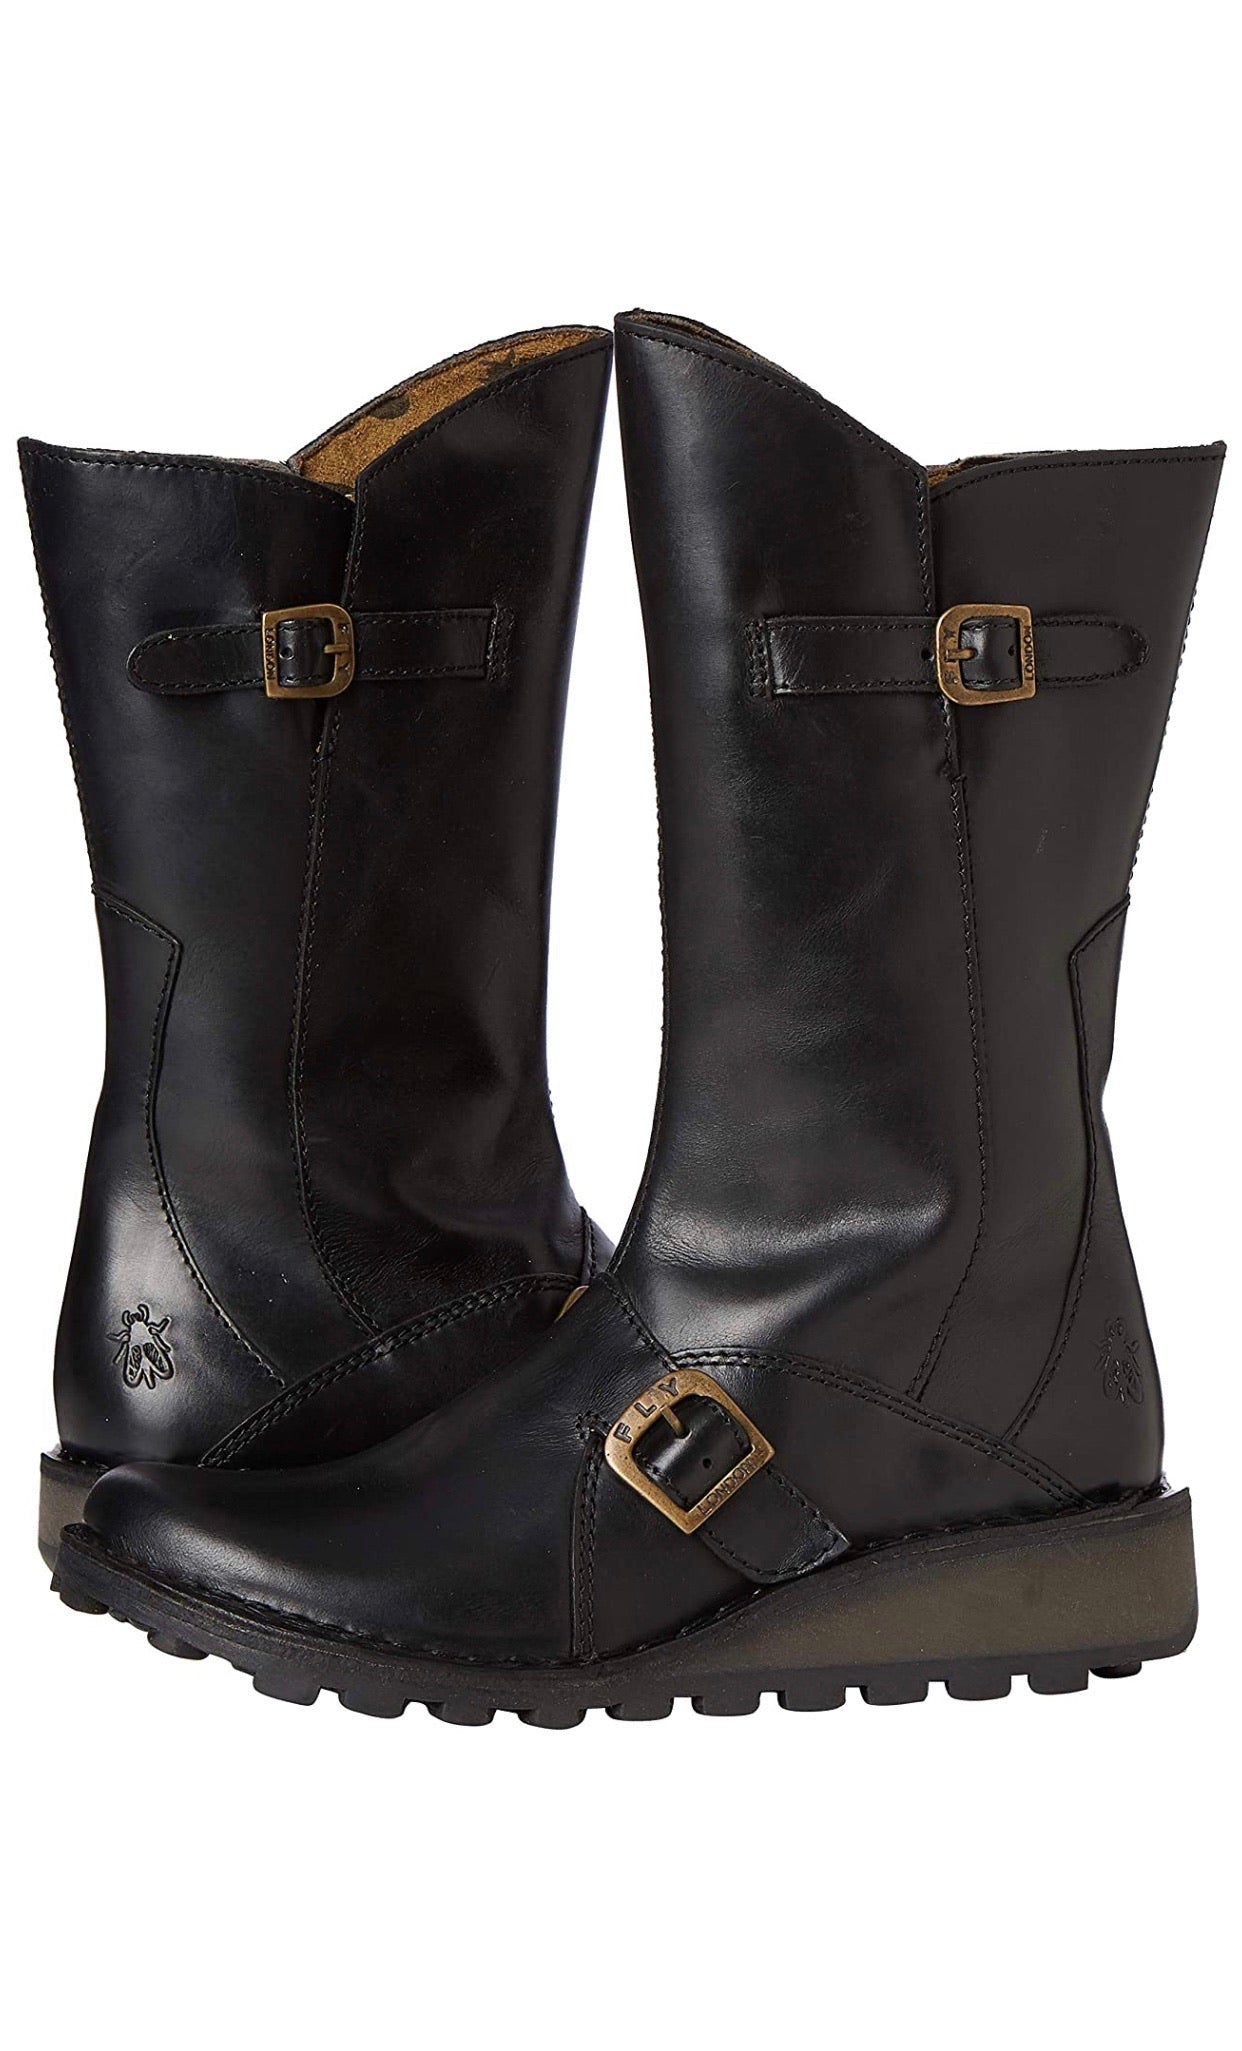 Fly London Ladies Boots Mes 2 Black Zip Mid Calf Boots Made In Portugal